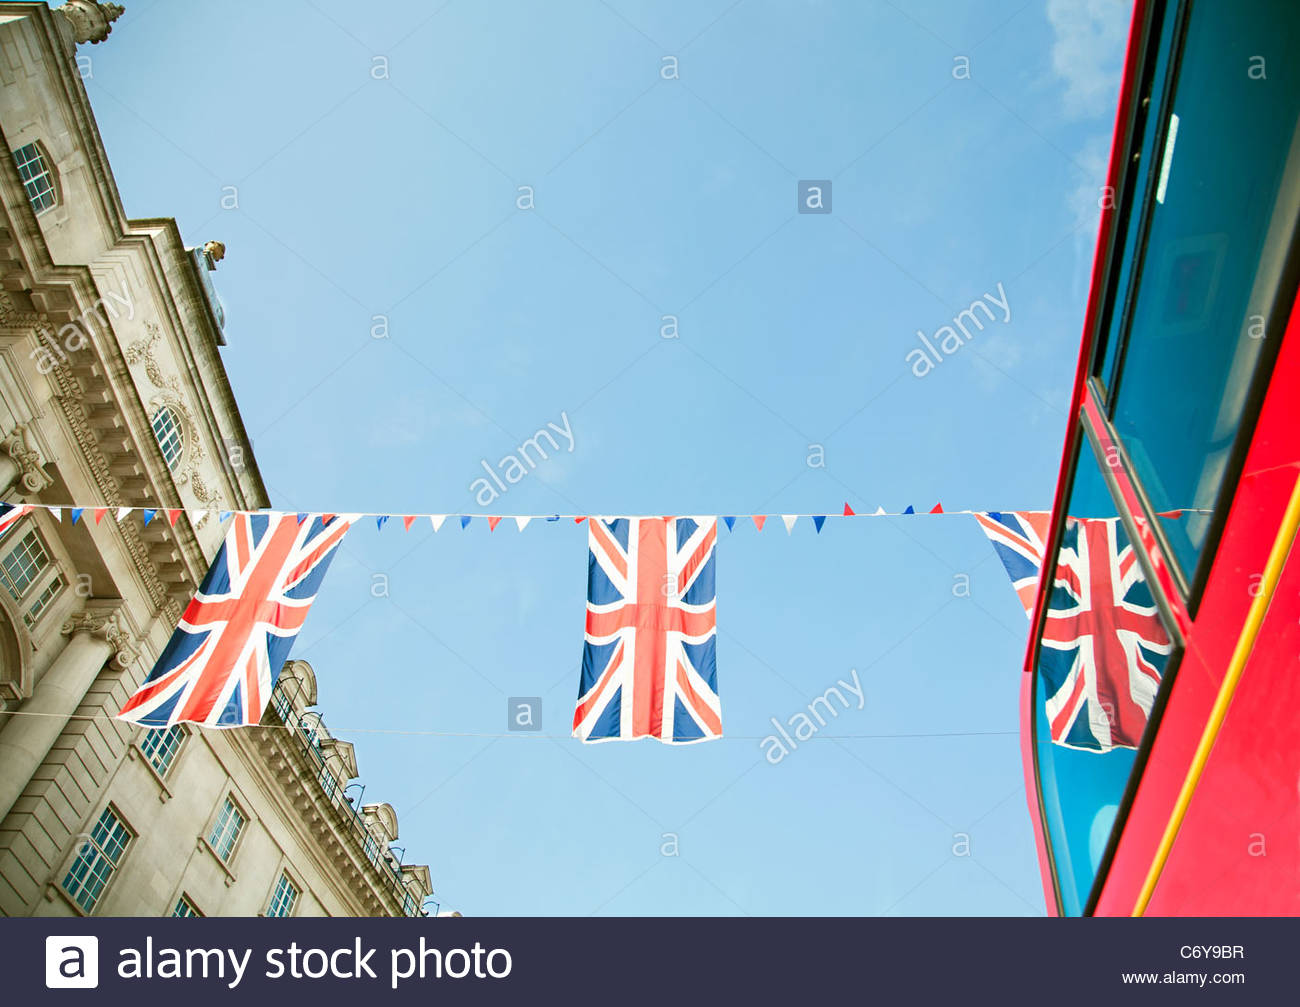 Union Jack flags hanging in London - Stock Image